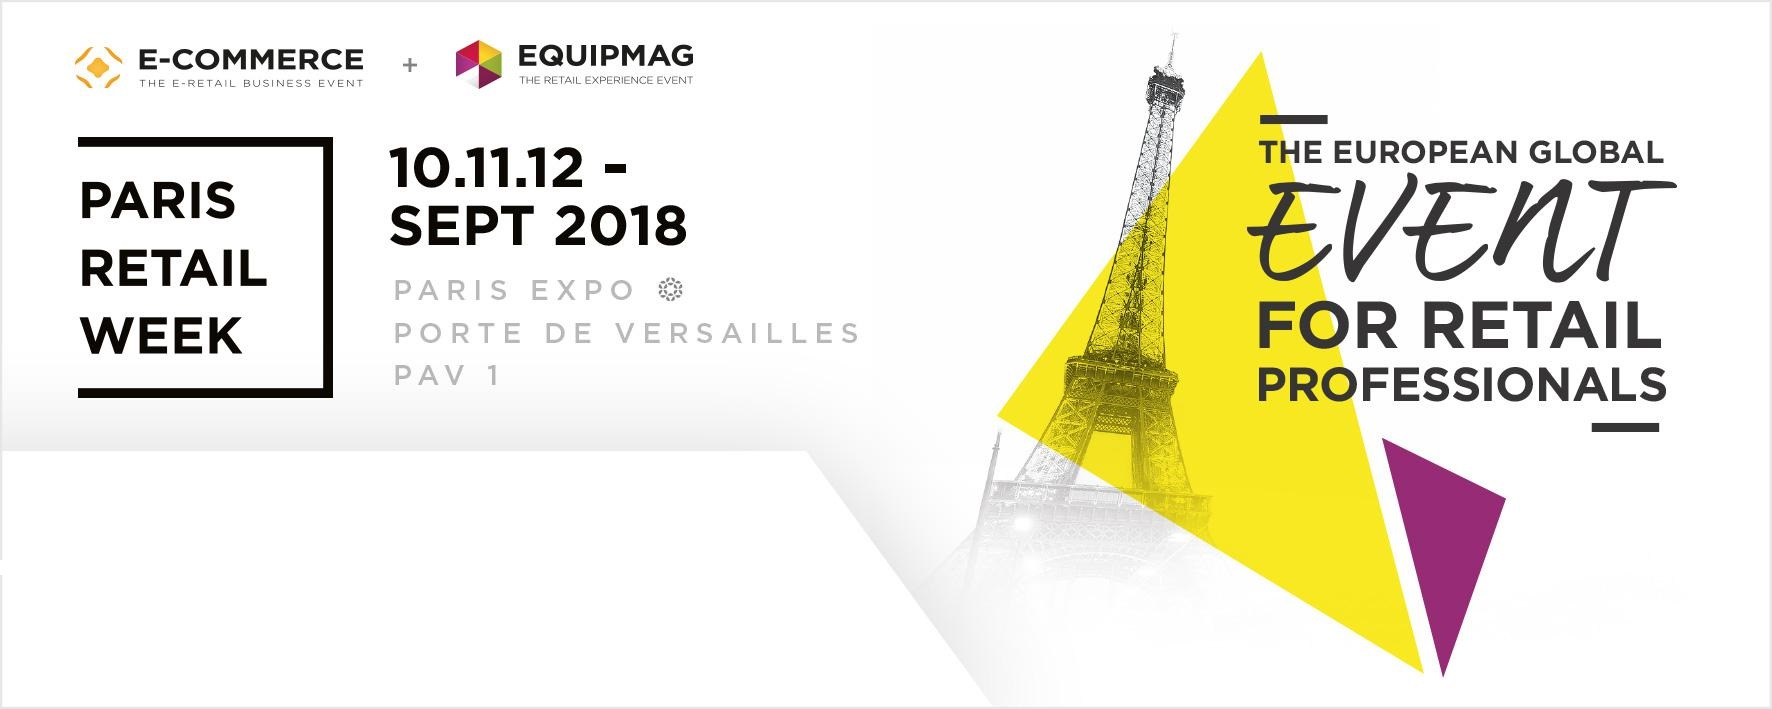 MaPS System at Paris Retail Week 2018